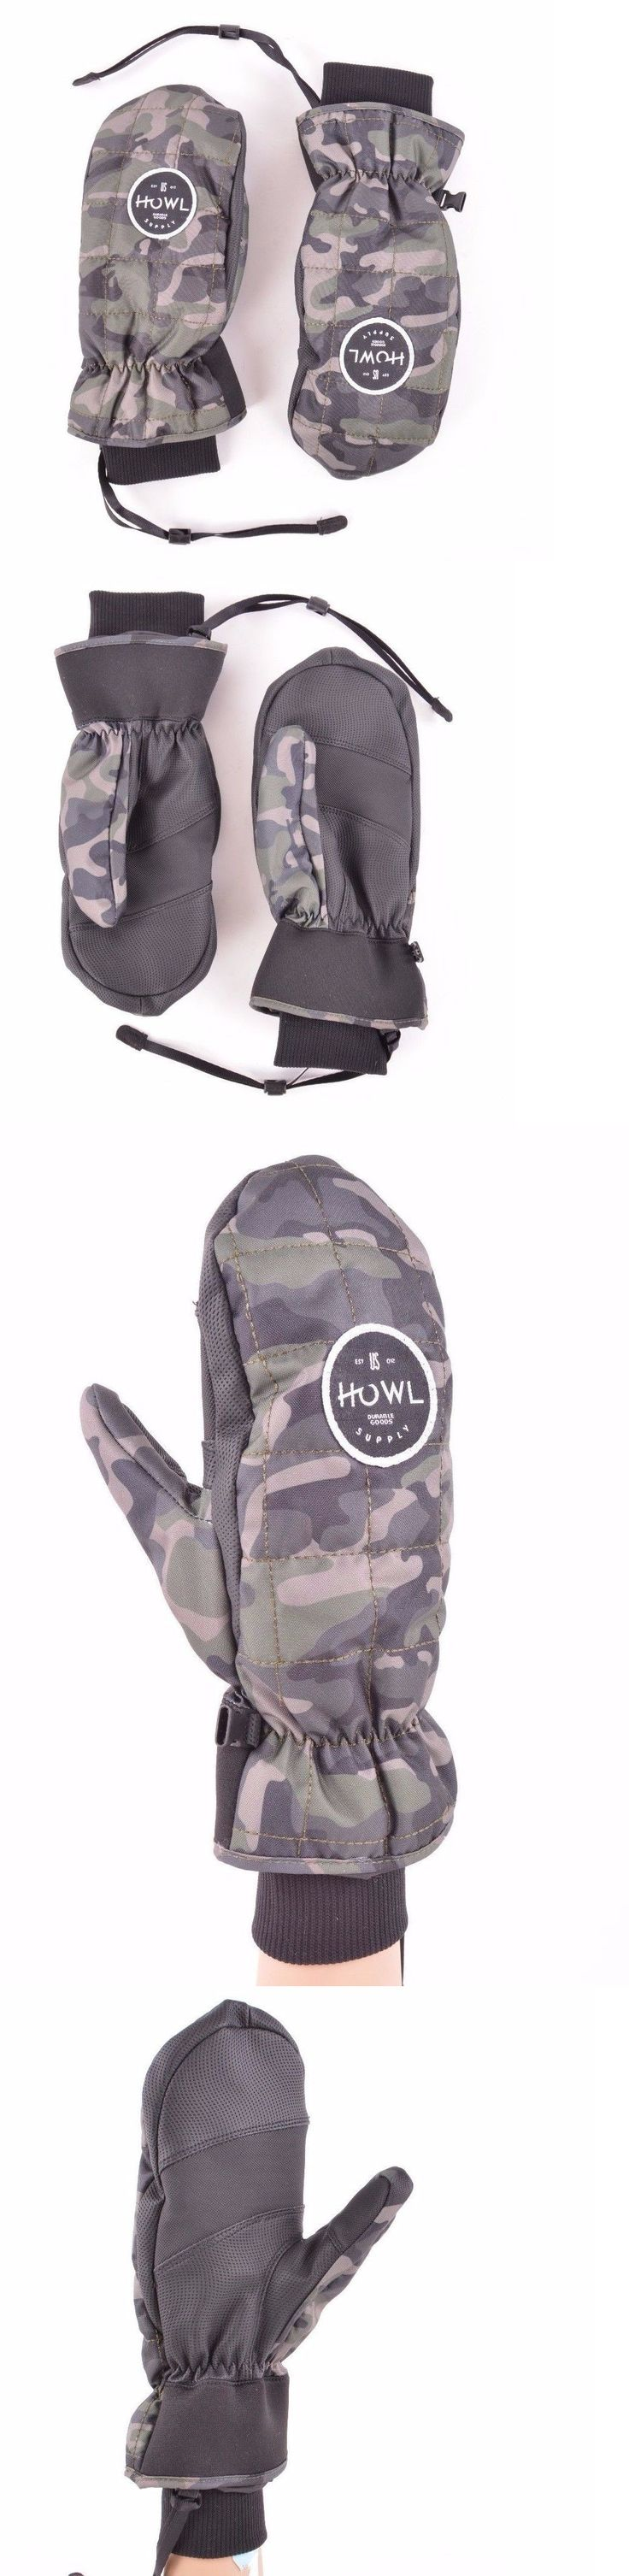 Gloves and Mittens 62172: 2017 Nwt Mens Howl Jed Snowboard Mitt $49 S Camo Black Gloves Mittens Anderson -> BUY IT NOW ONLY: $36.75 on eBay!